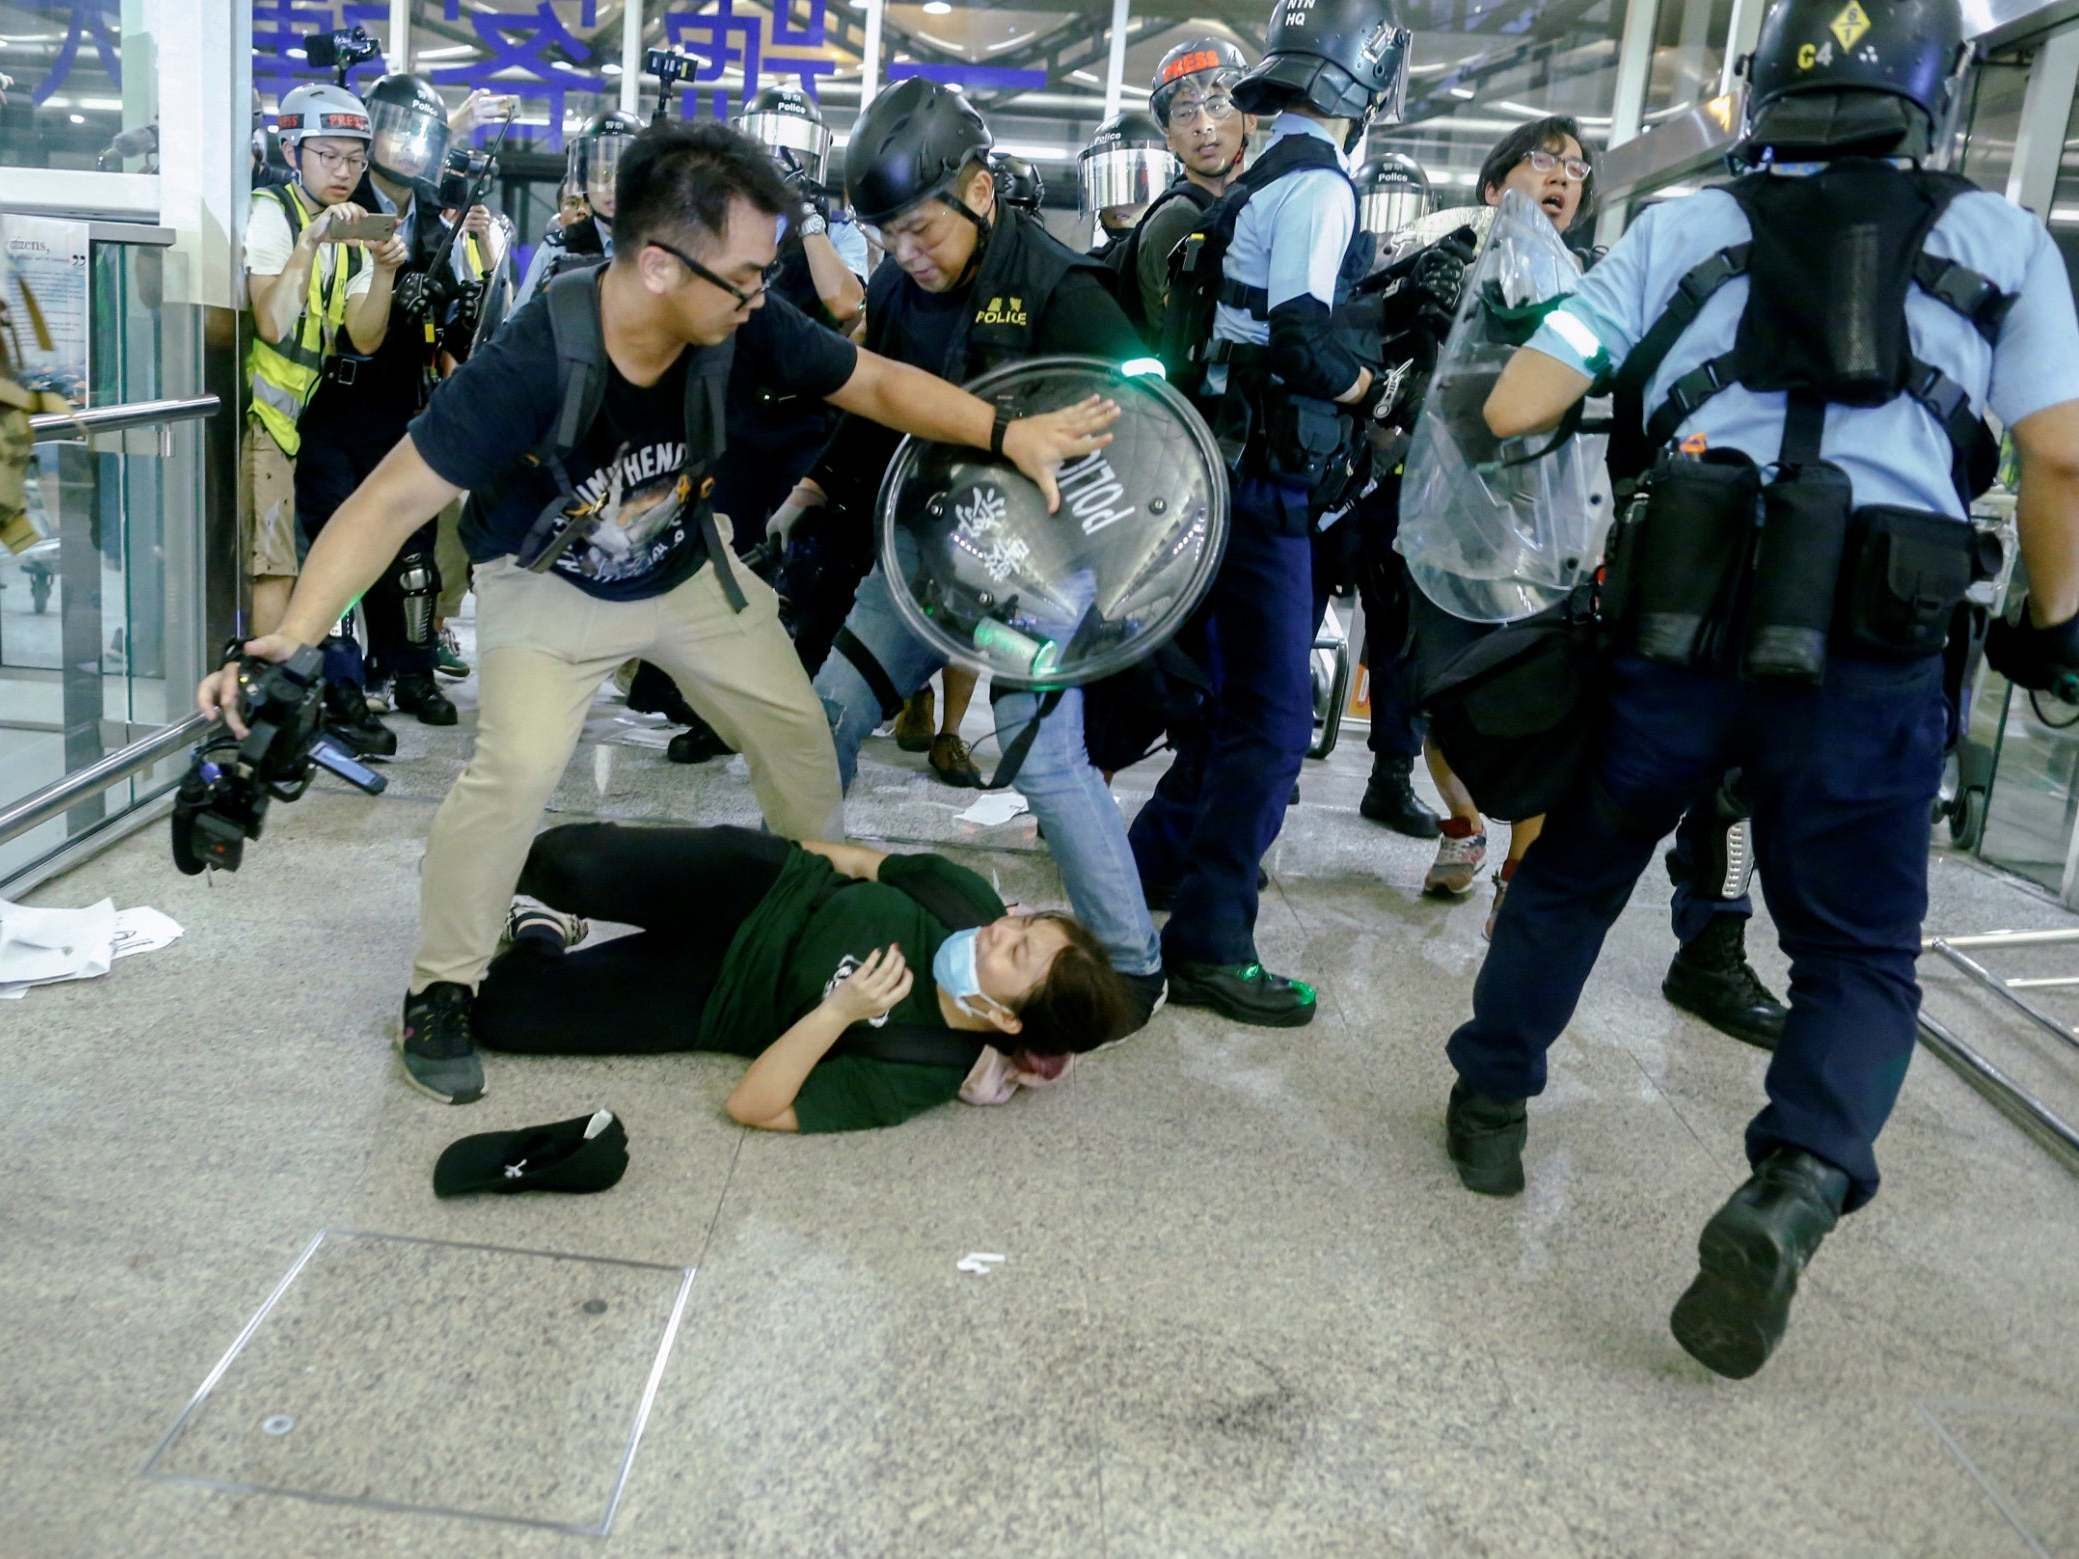 Hong Kong protests - live: Police officer mobbed by crowd pulls gun on protesters amid violent clashes at airport